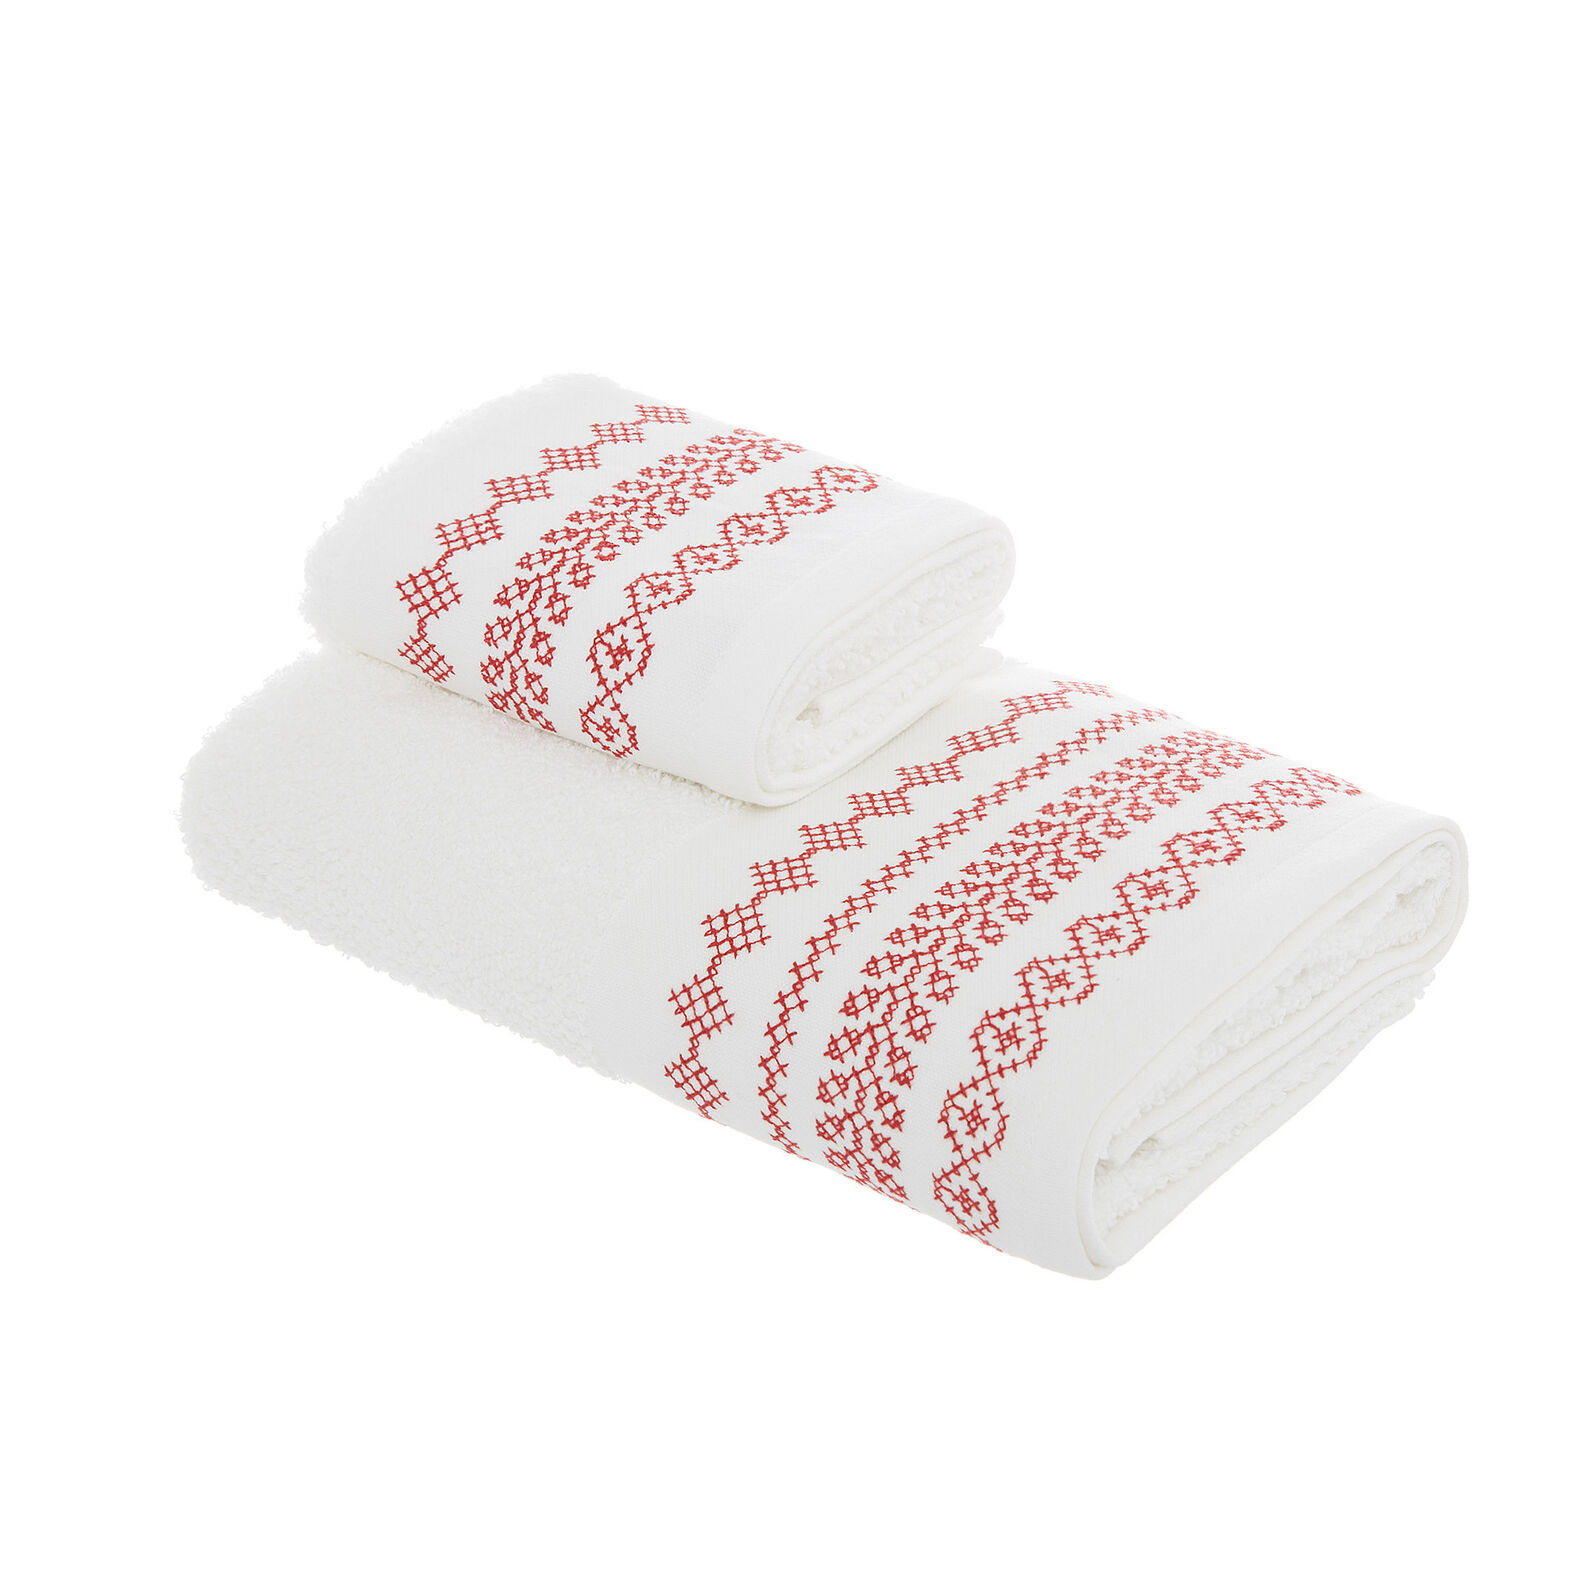 Set of 2 towels with cross-stitch embroidery